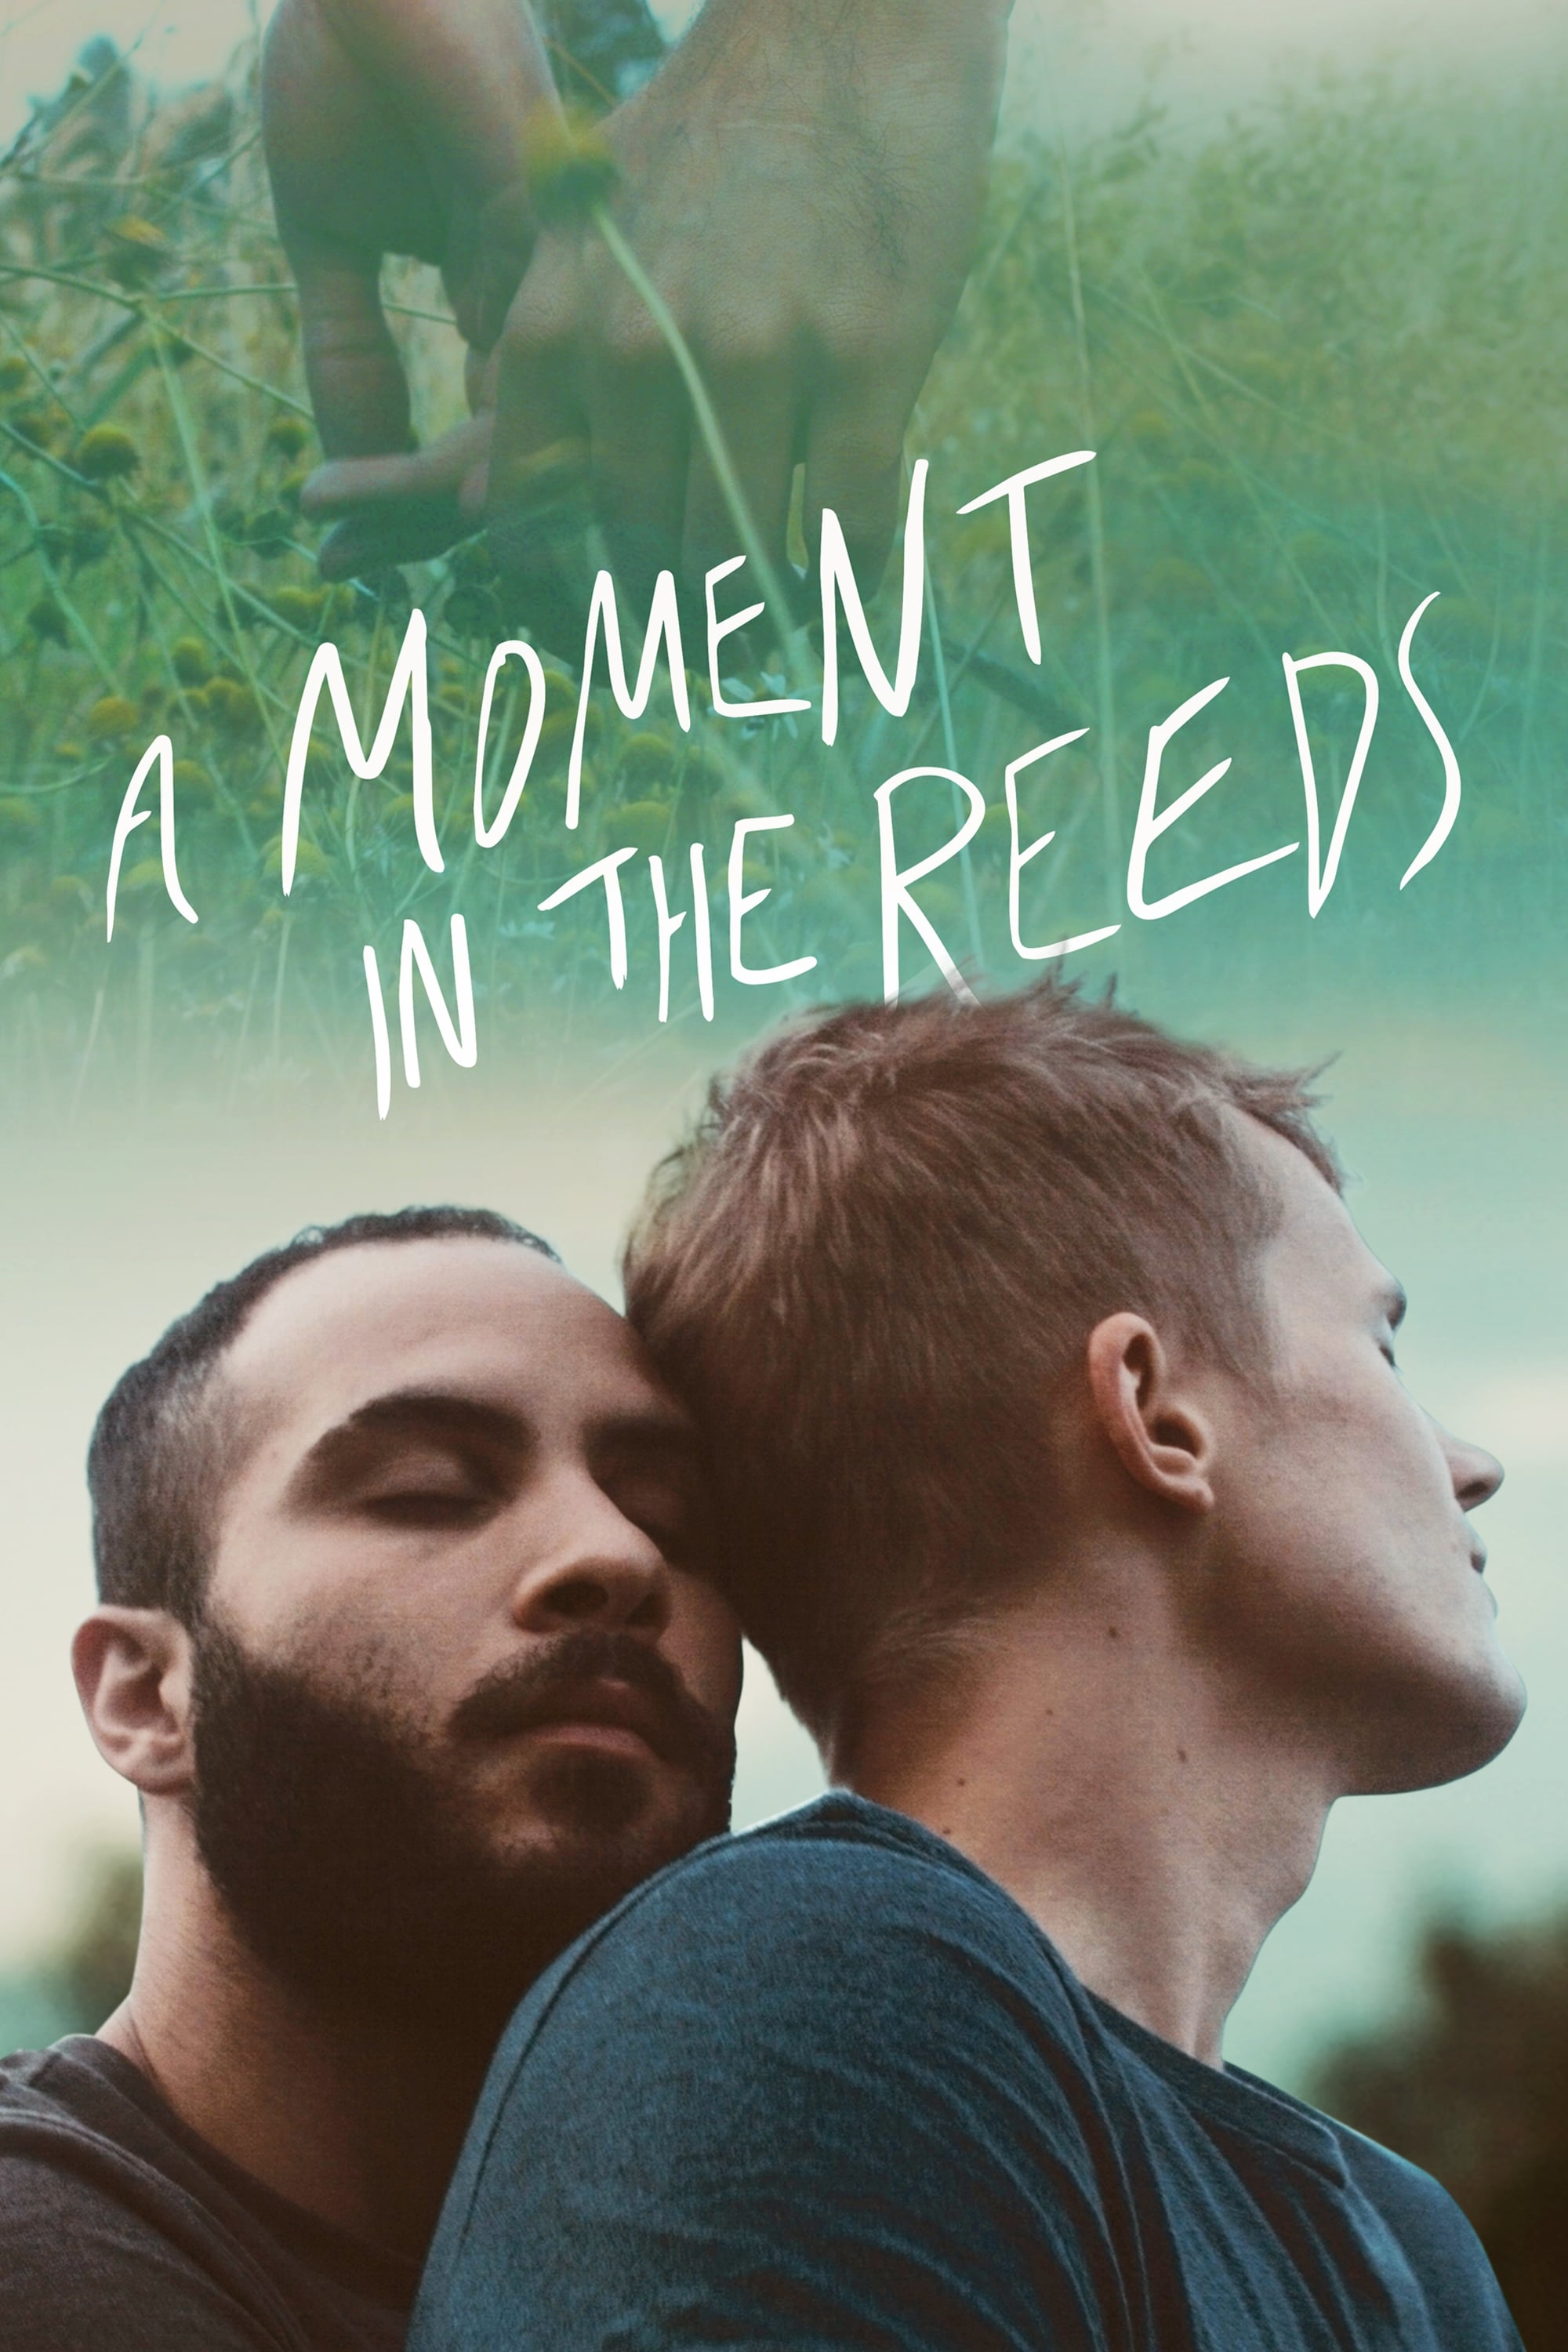 a moment in the reeds watch online free 123movies